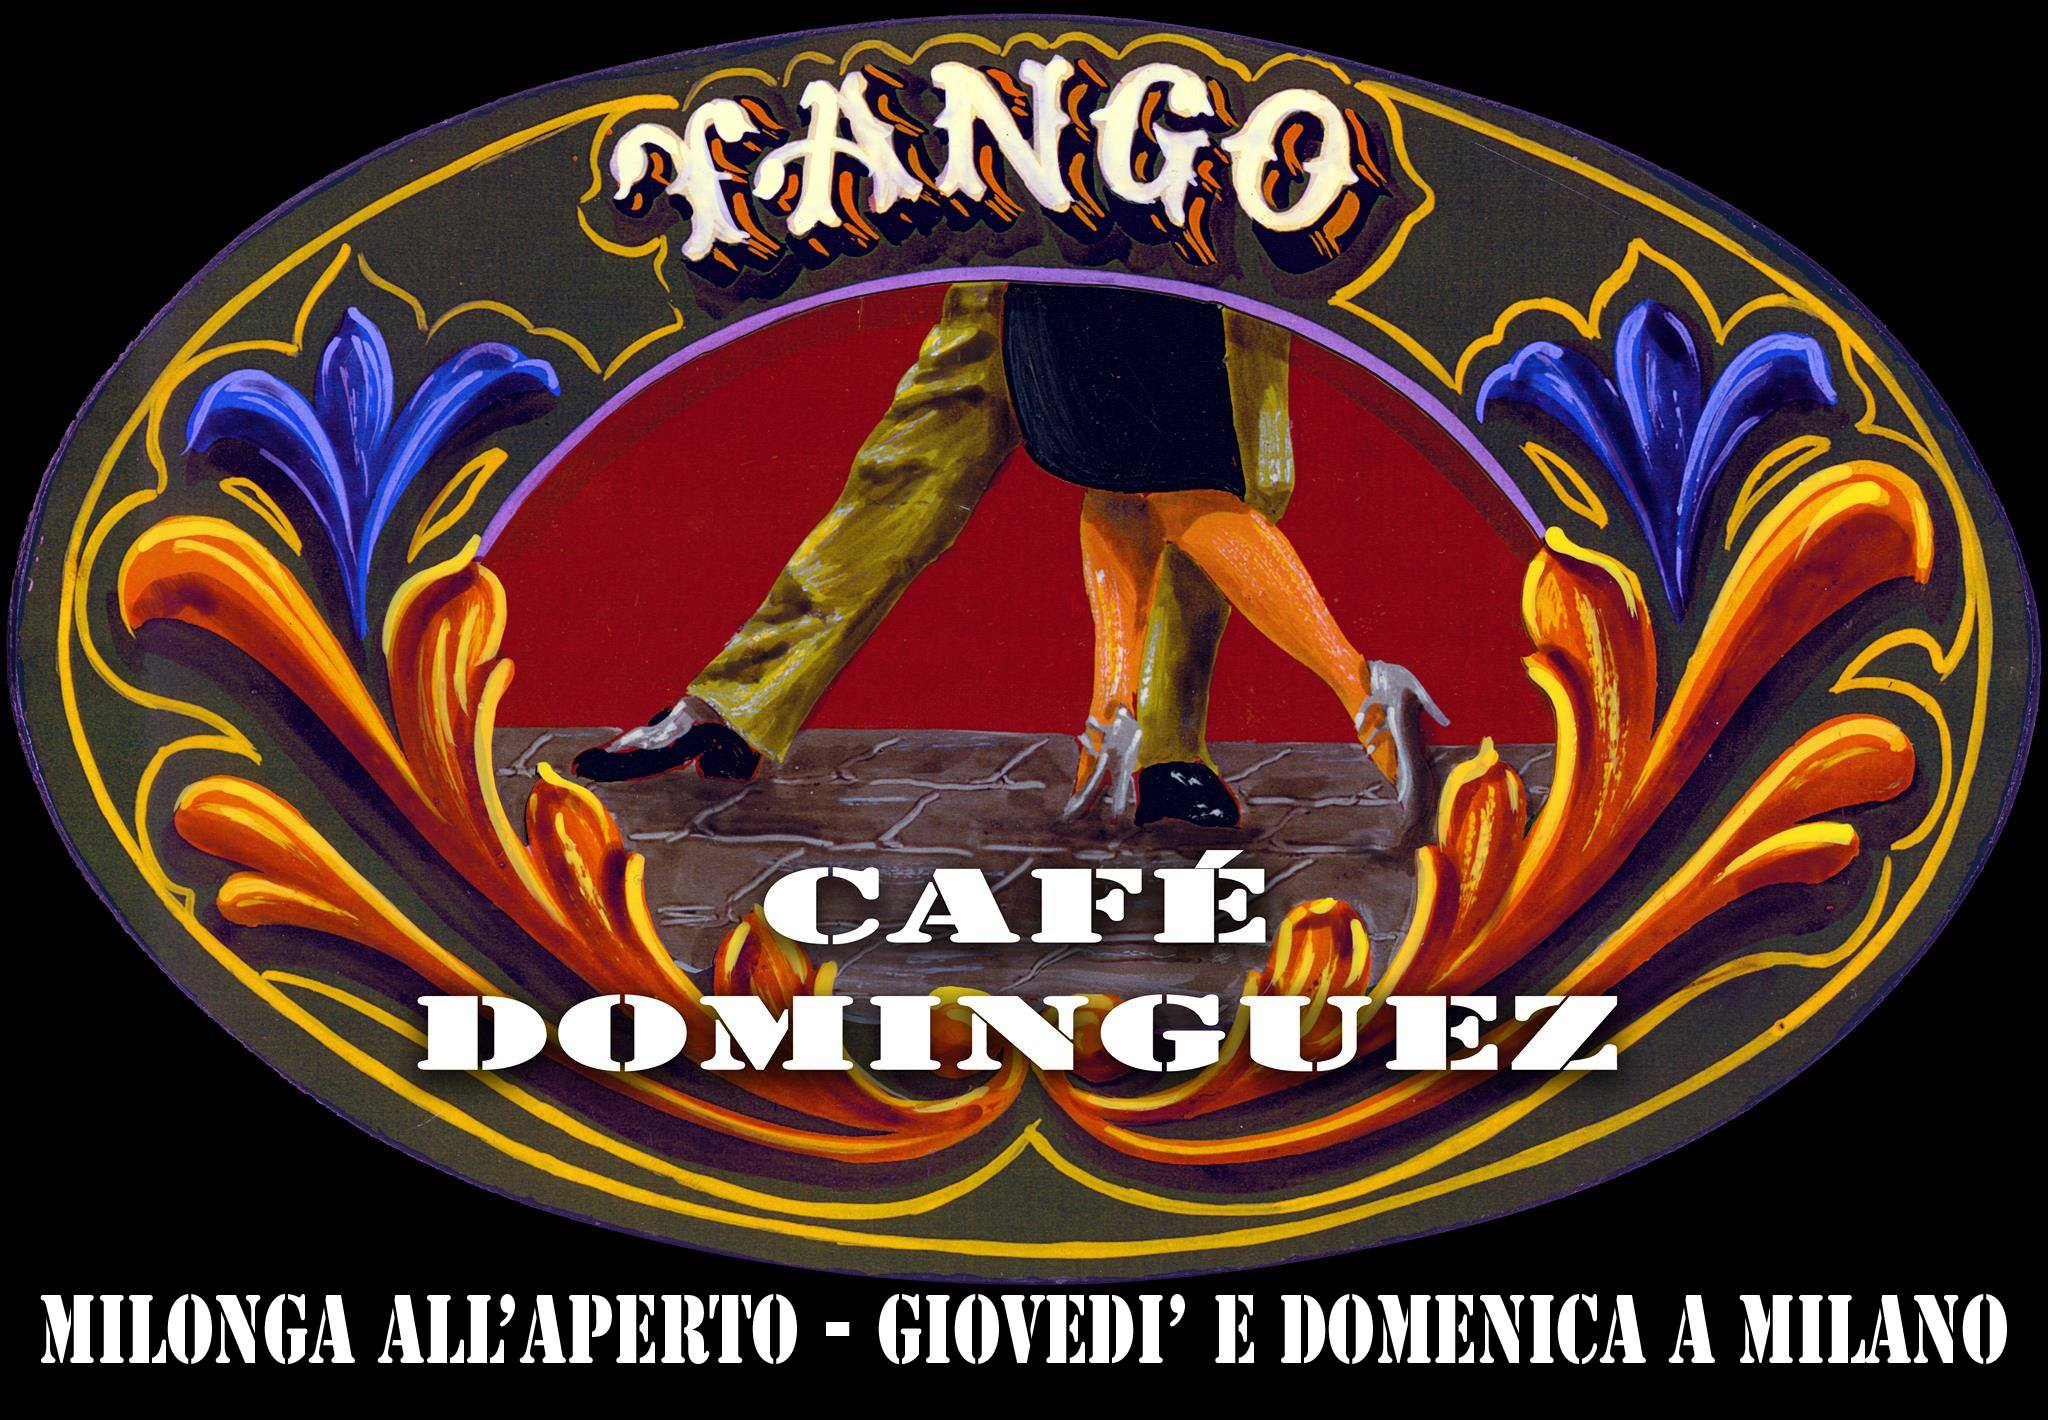 Café Dominguez, la milonga milanese all'aperto